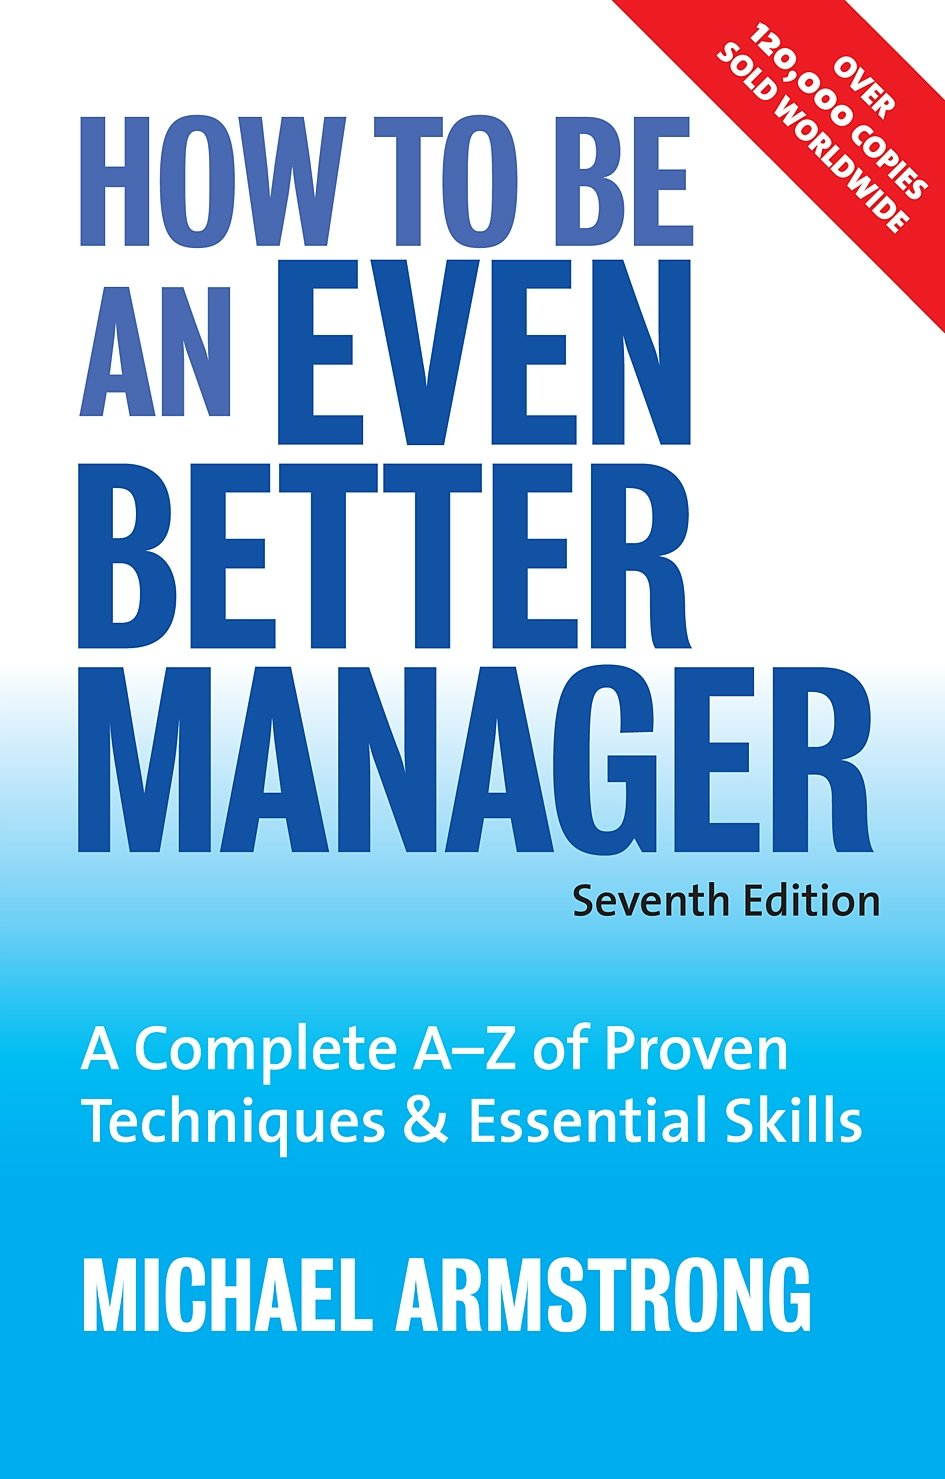 How to Be an Even Better Manager: A Complete A-Z of Proven Techniques and Essential Skills ebook